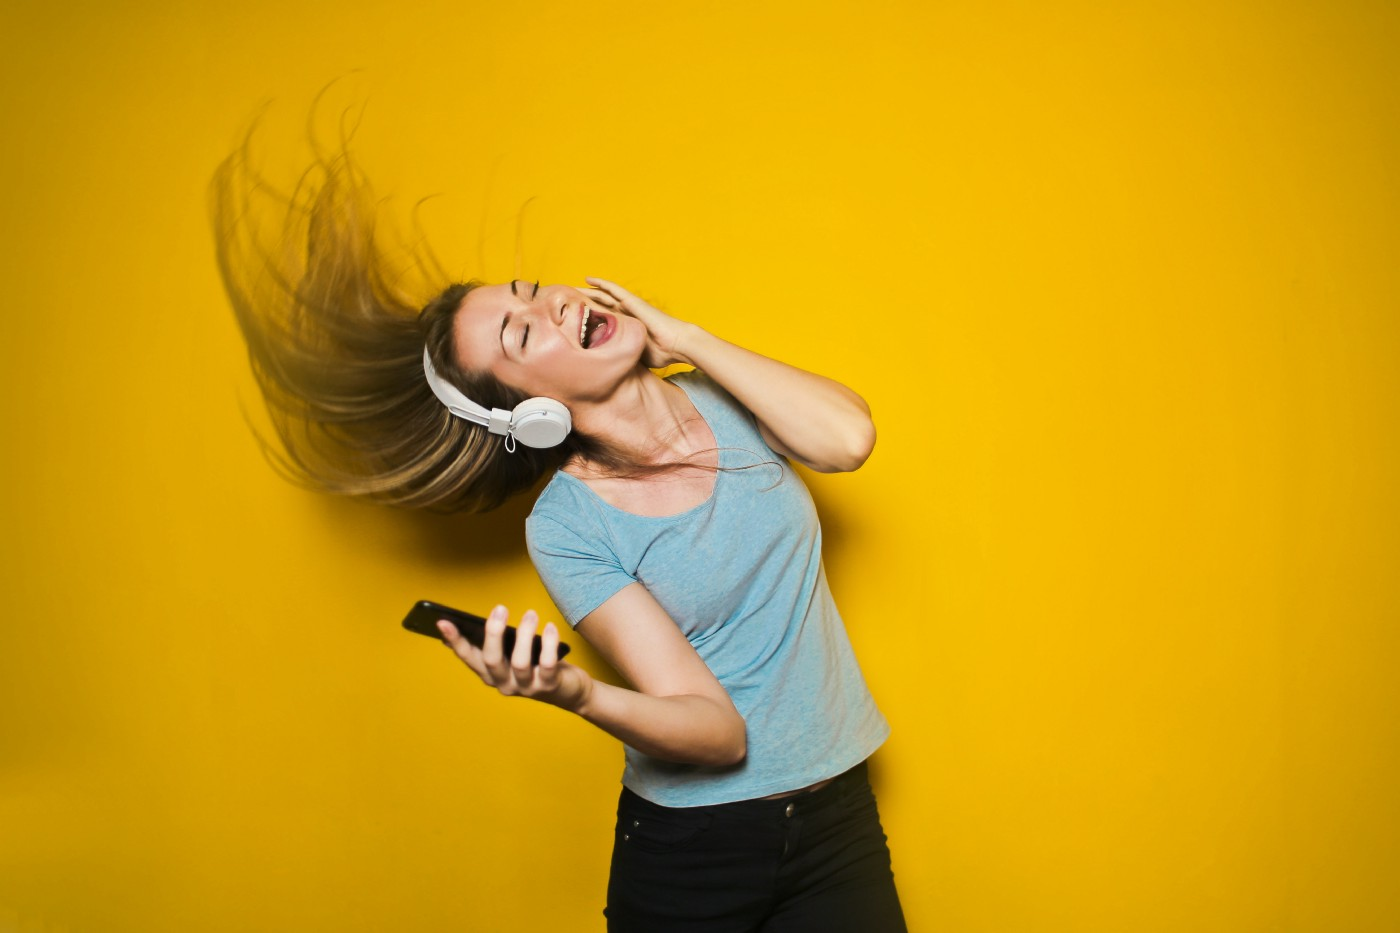 woman wearing headphones and holding phone while she sings to music